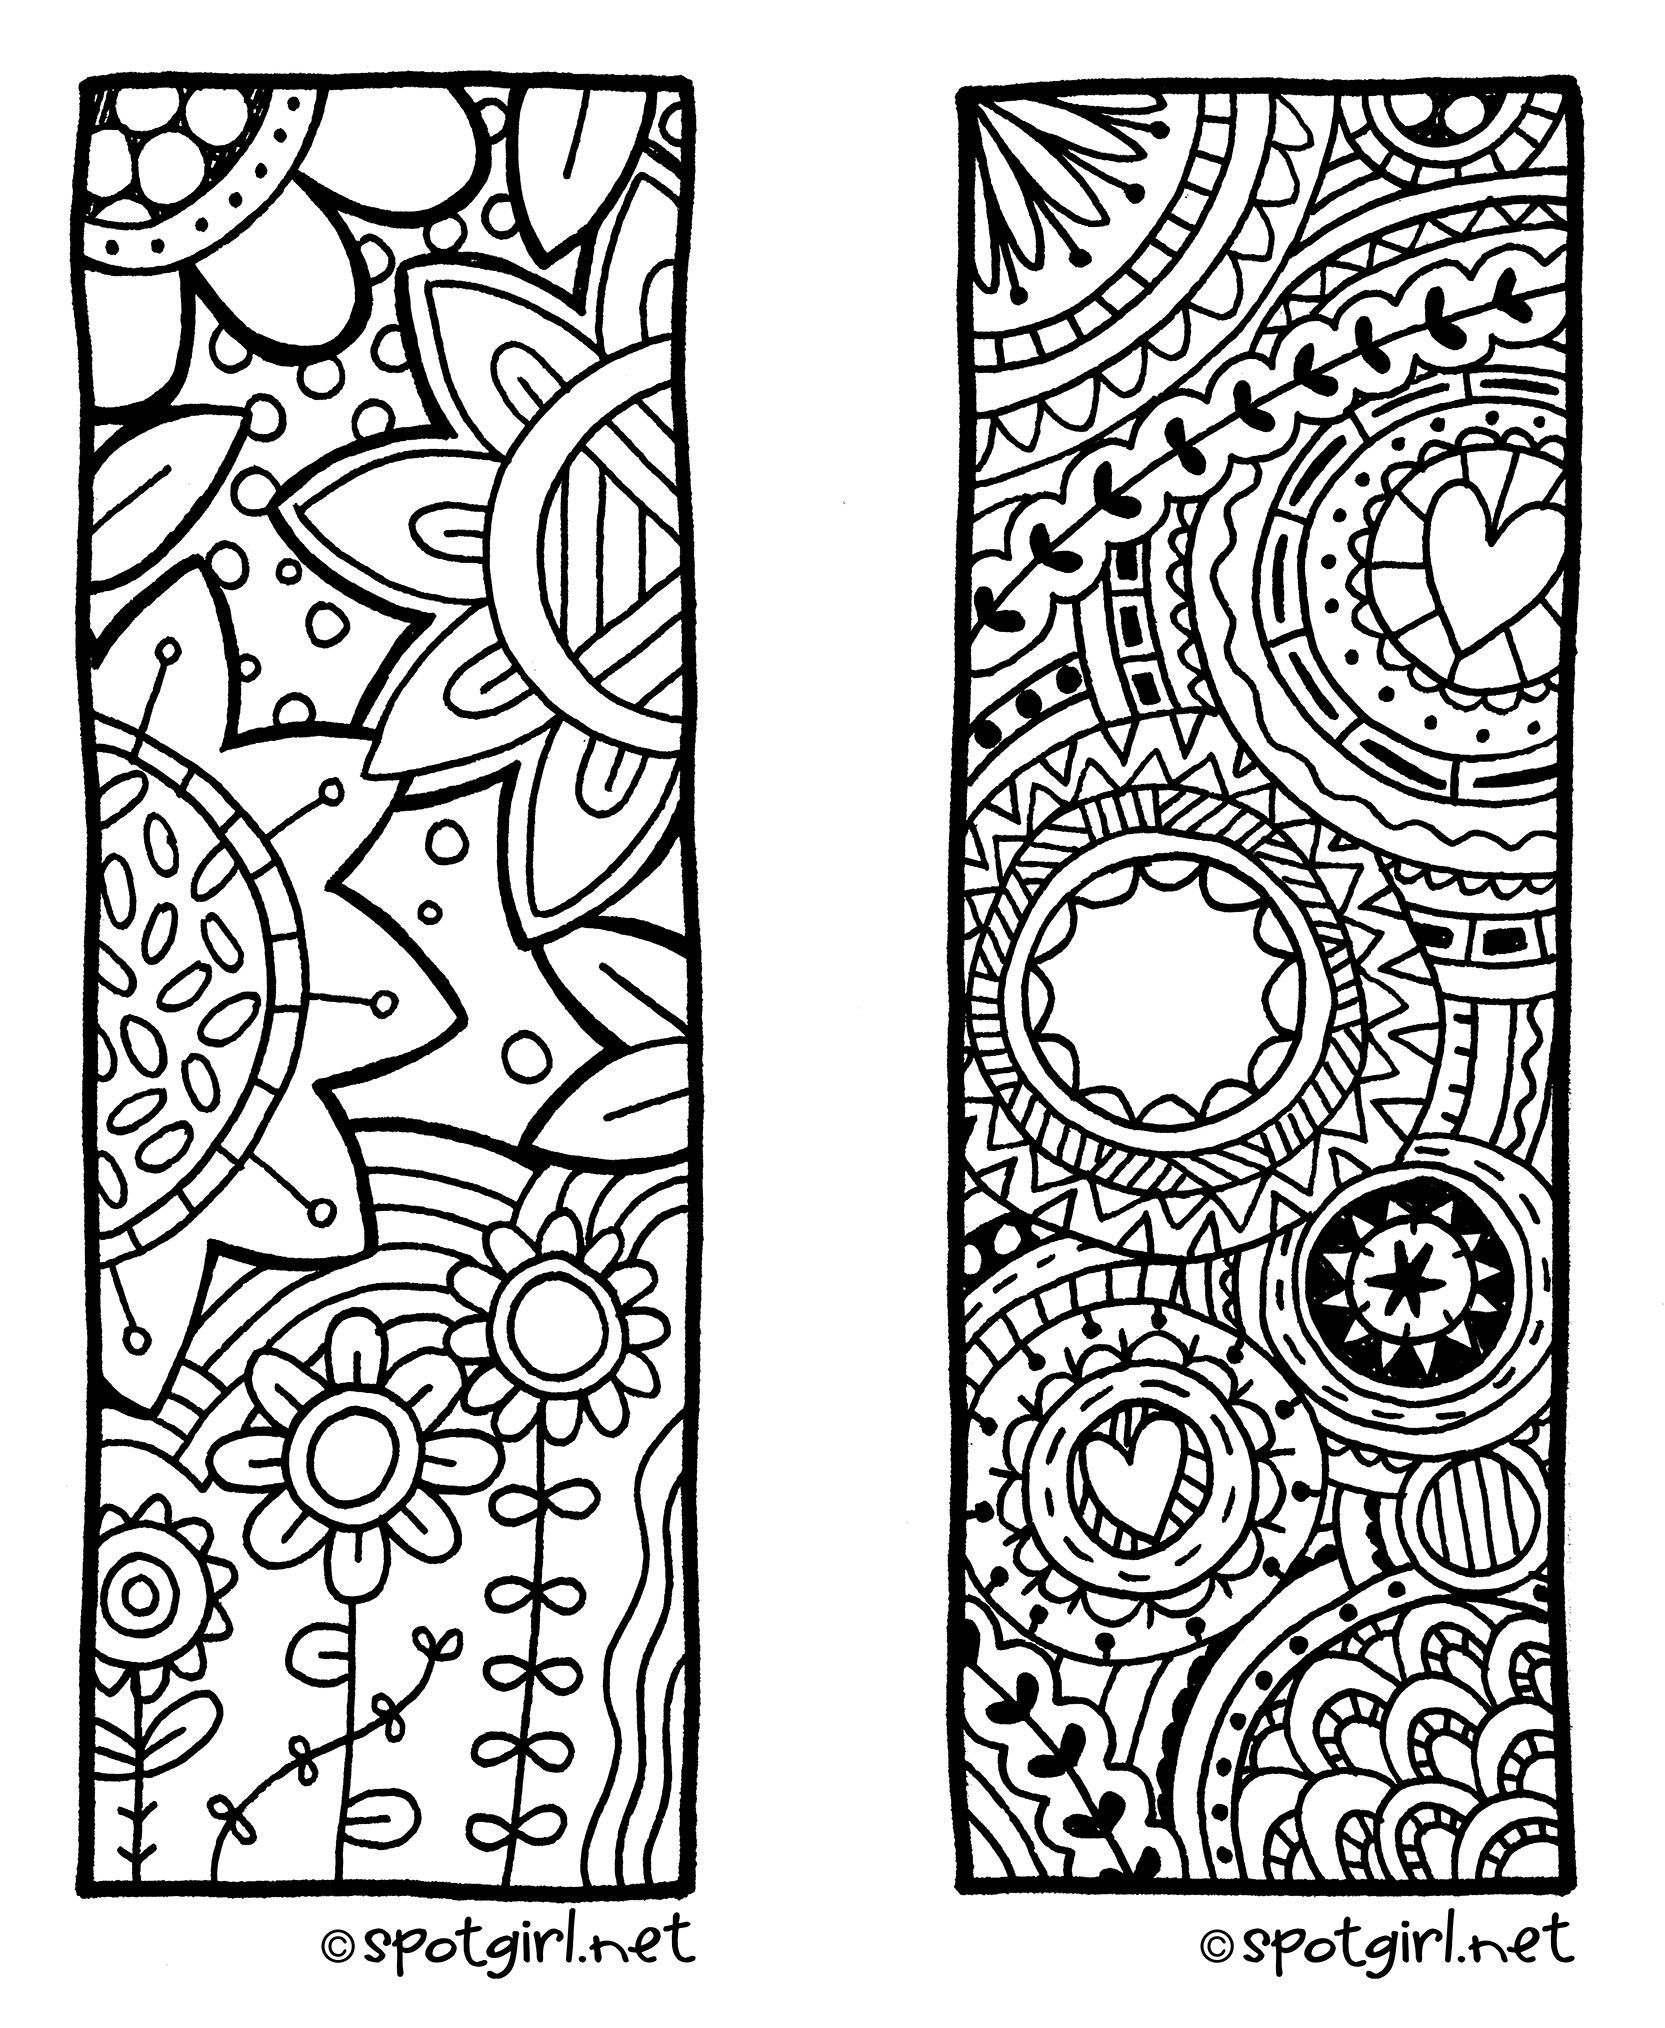 Free Printable Bookmarks To Colour - Printable 360 Degree with Cool Bookmarks To Print And Color 27220